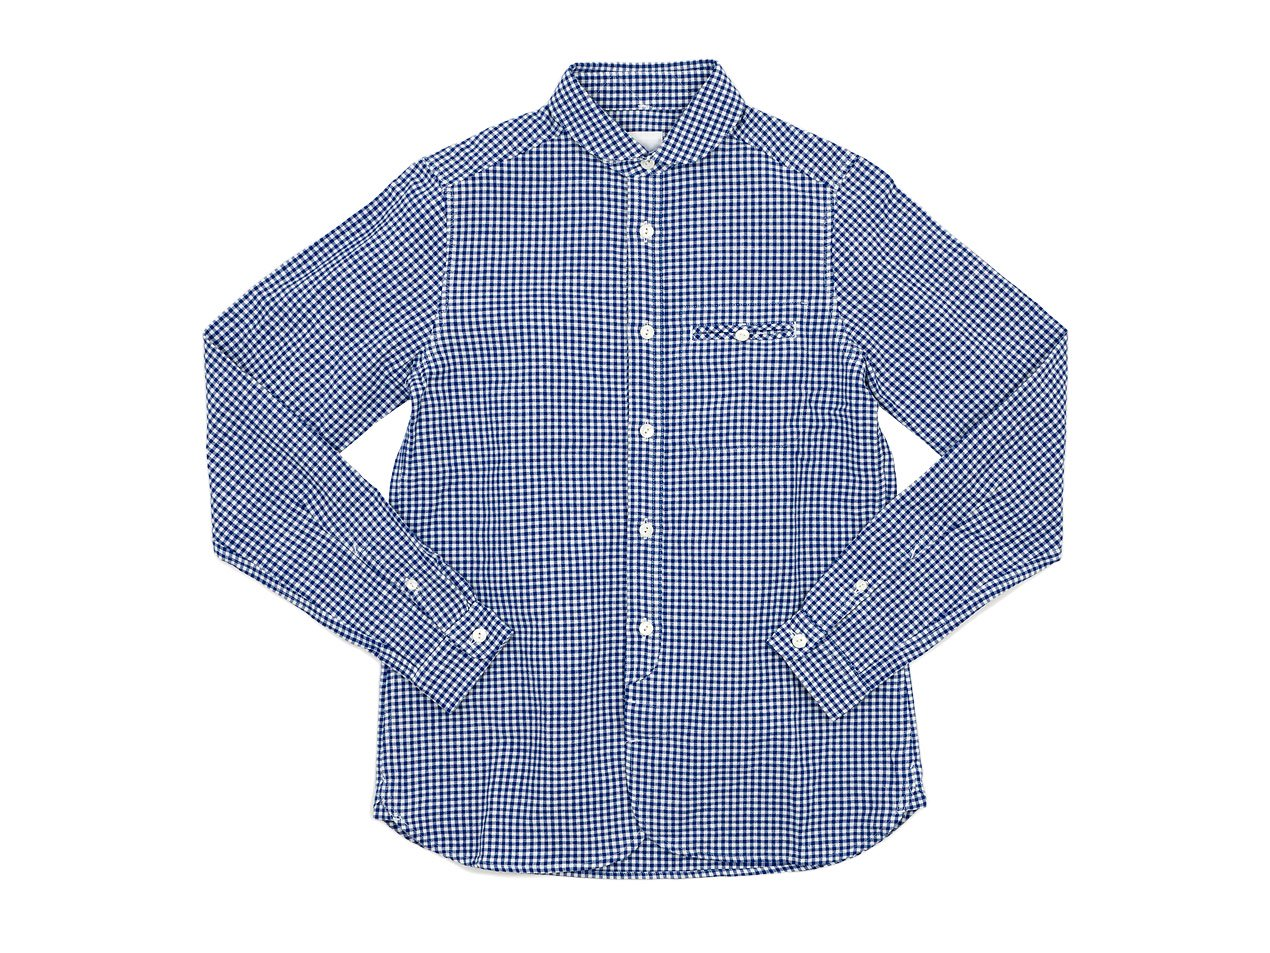 maillot sunset gingham round work shirts BLUE x WHITE